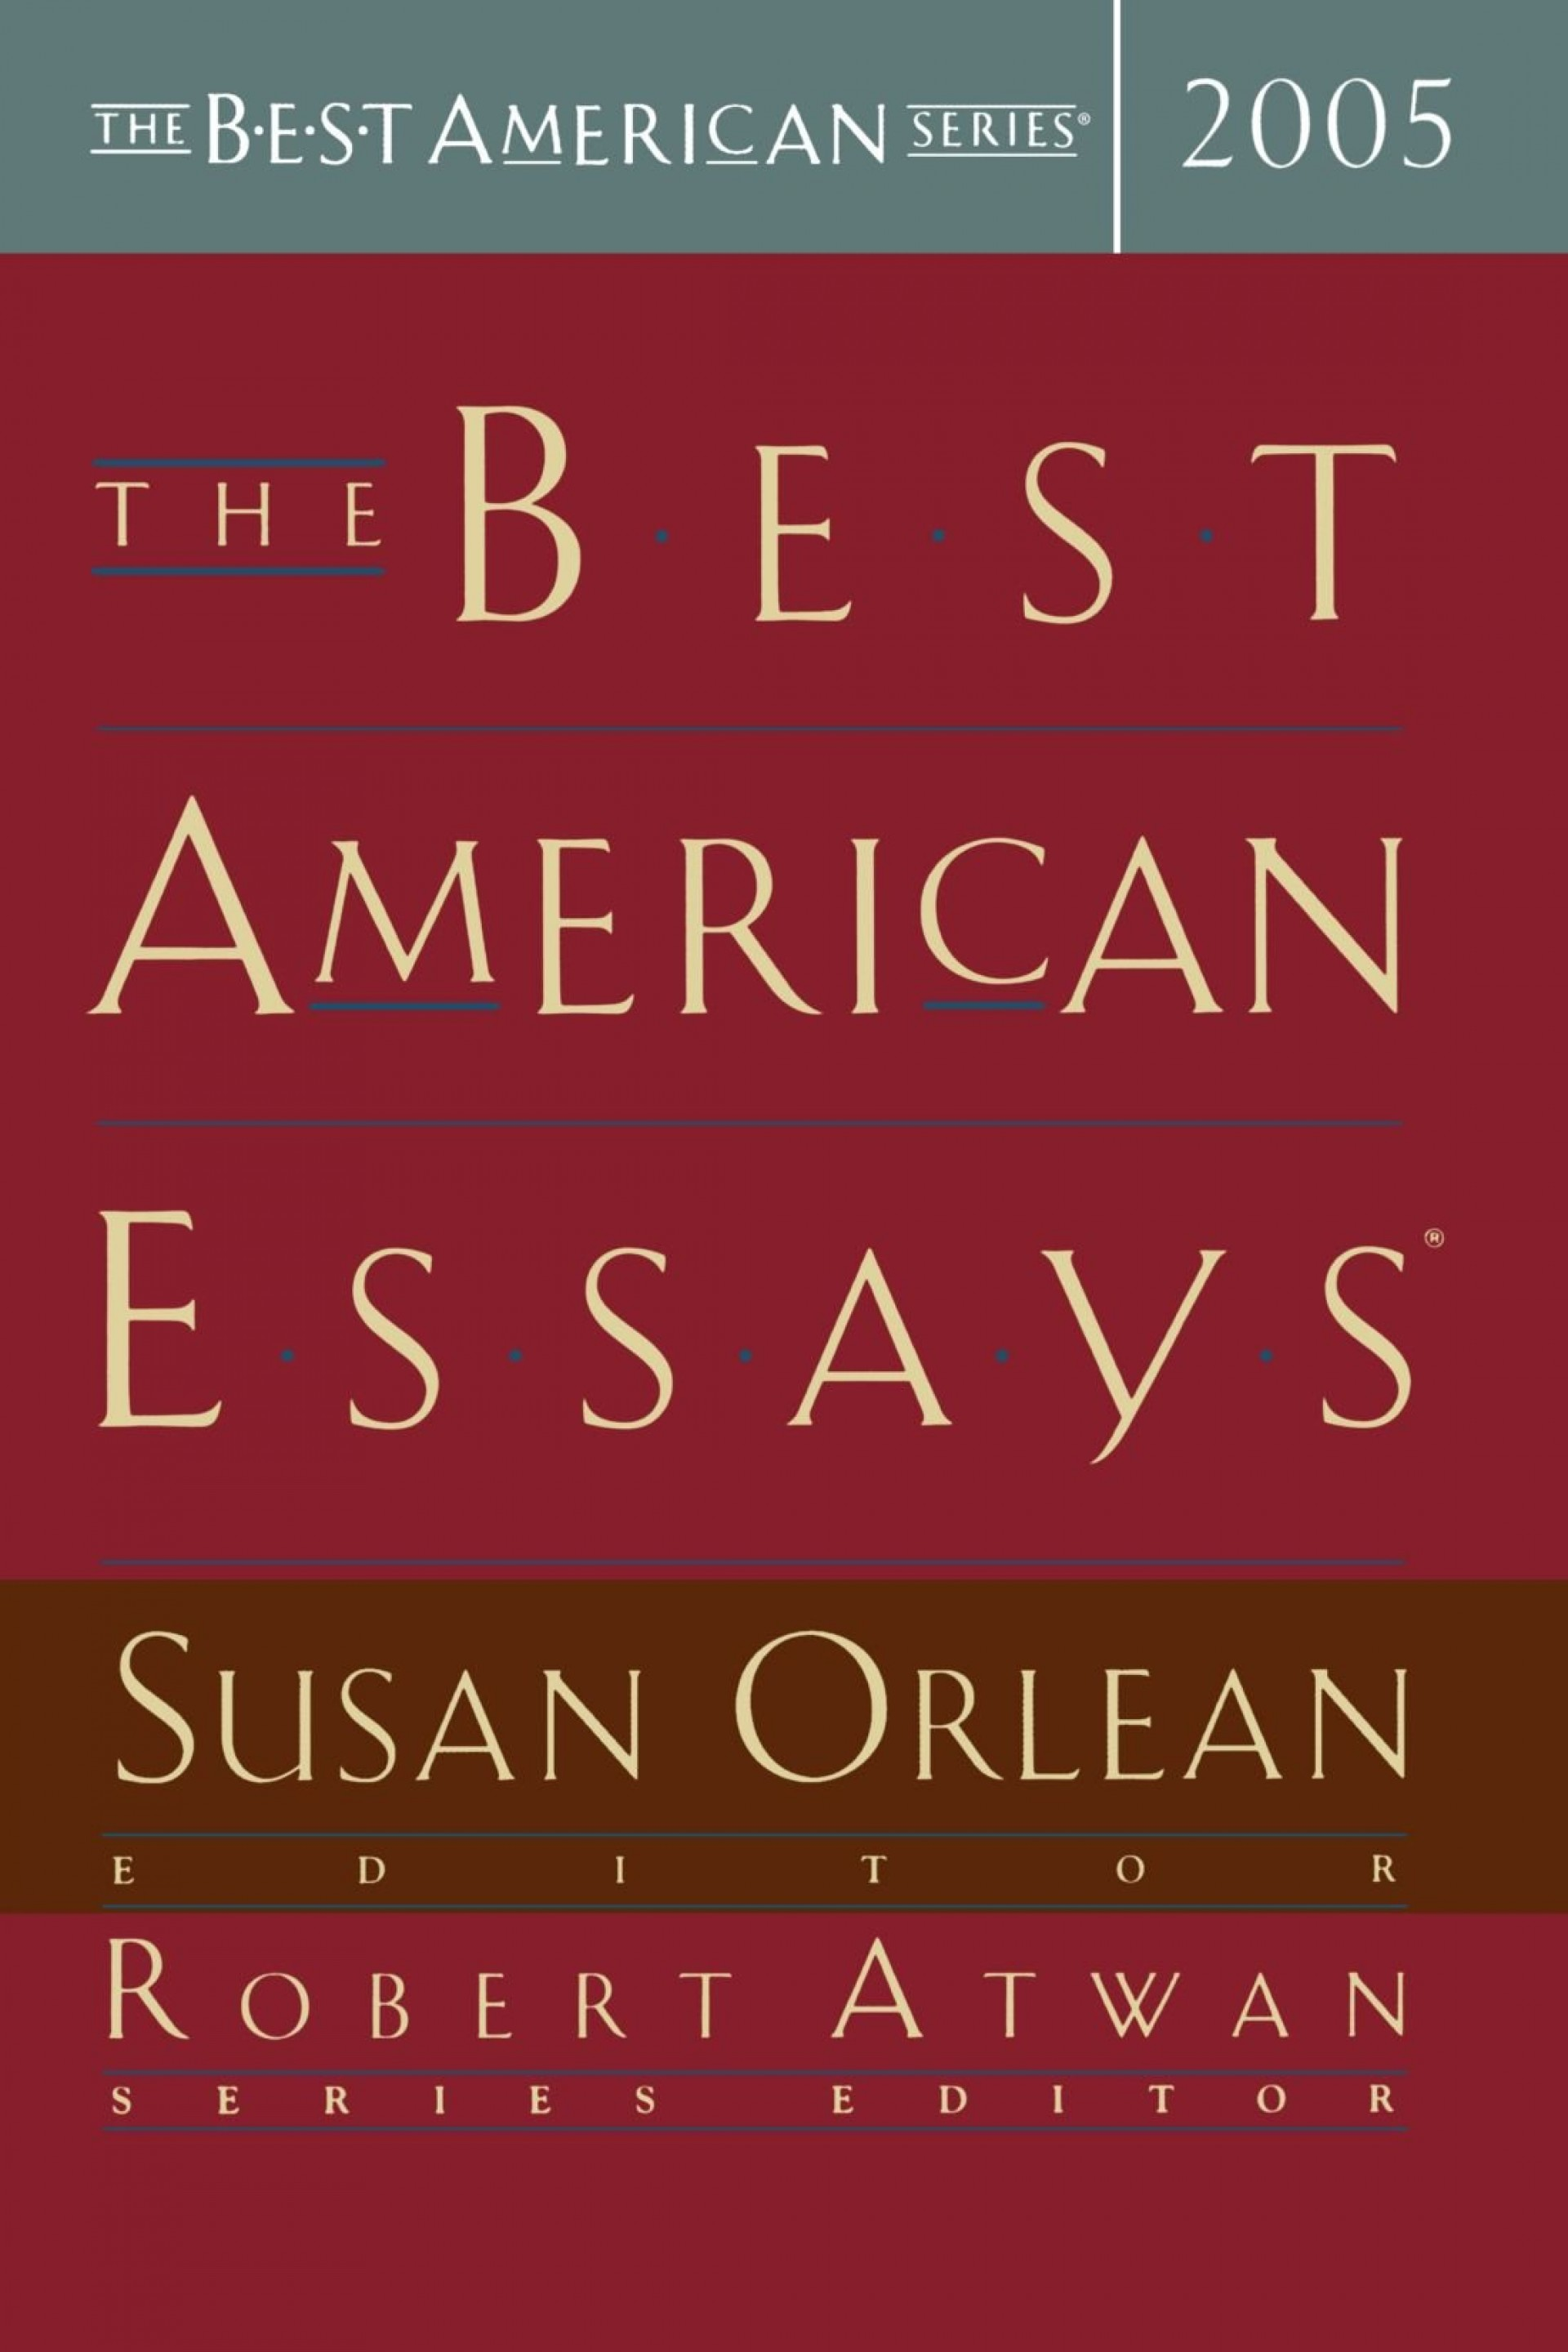 009 Essay Example 61eba7rjfxl The Best American Wonderful Essays 2018 Pdf 2017 Table Of Contents 2015 Free 1920